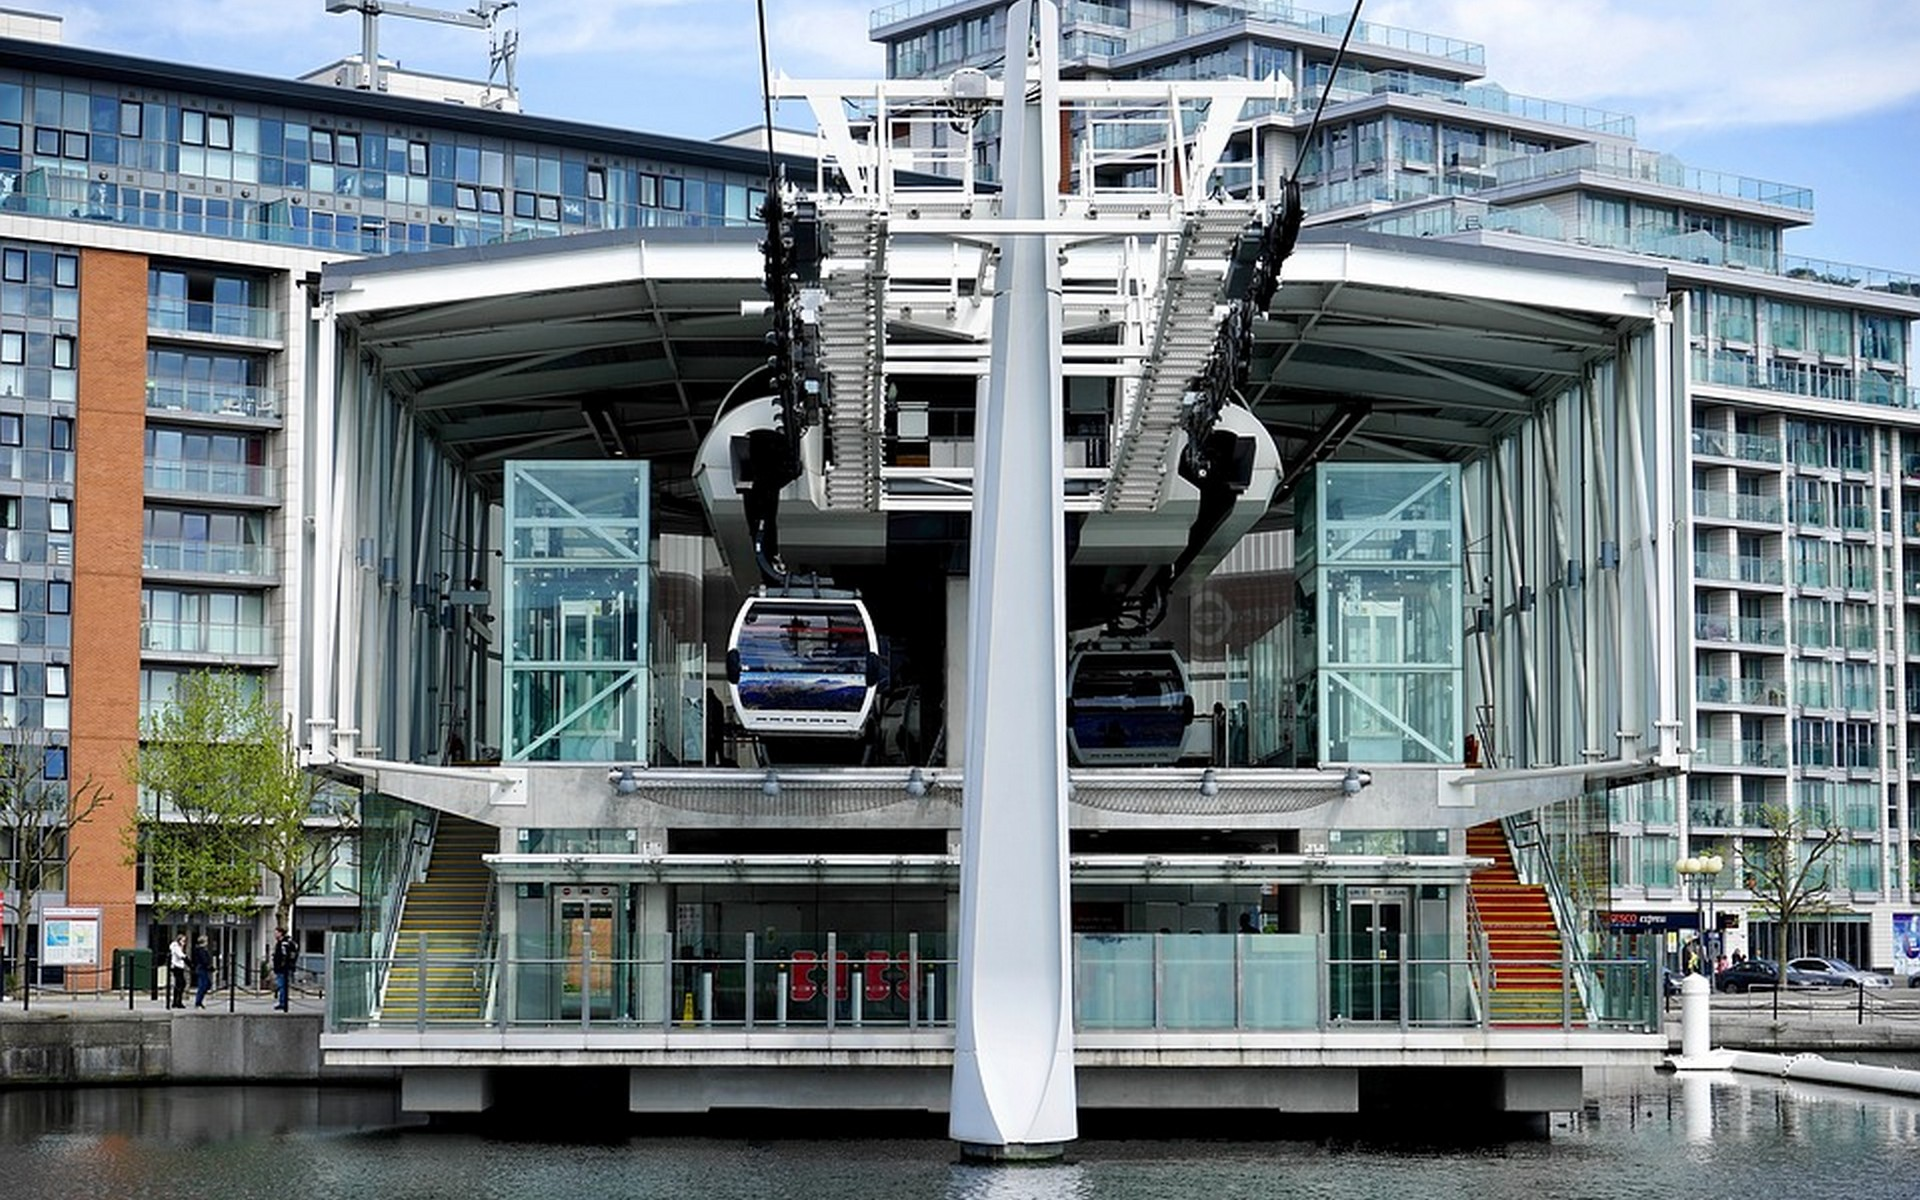 Emirates Air Line, Cable Car in Royal Docks, Docklands